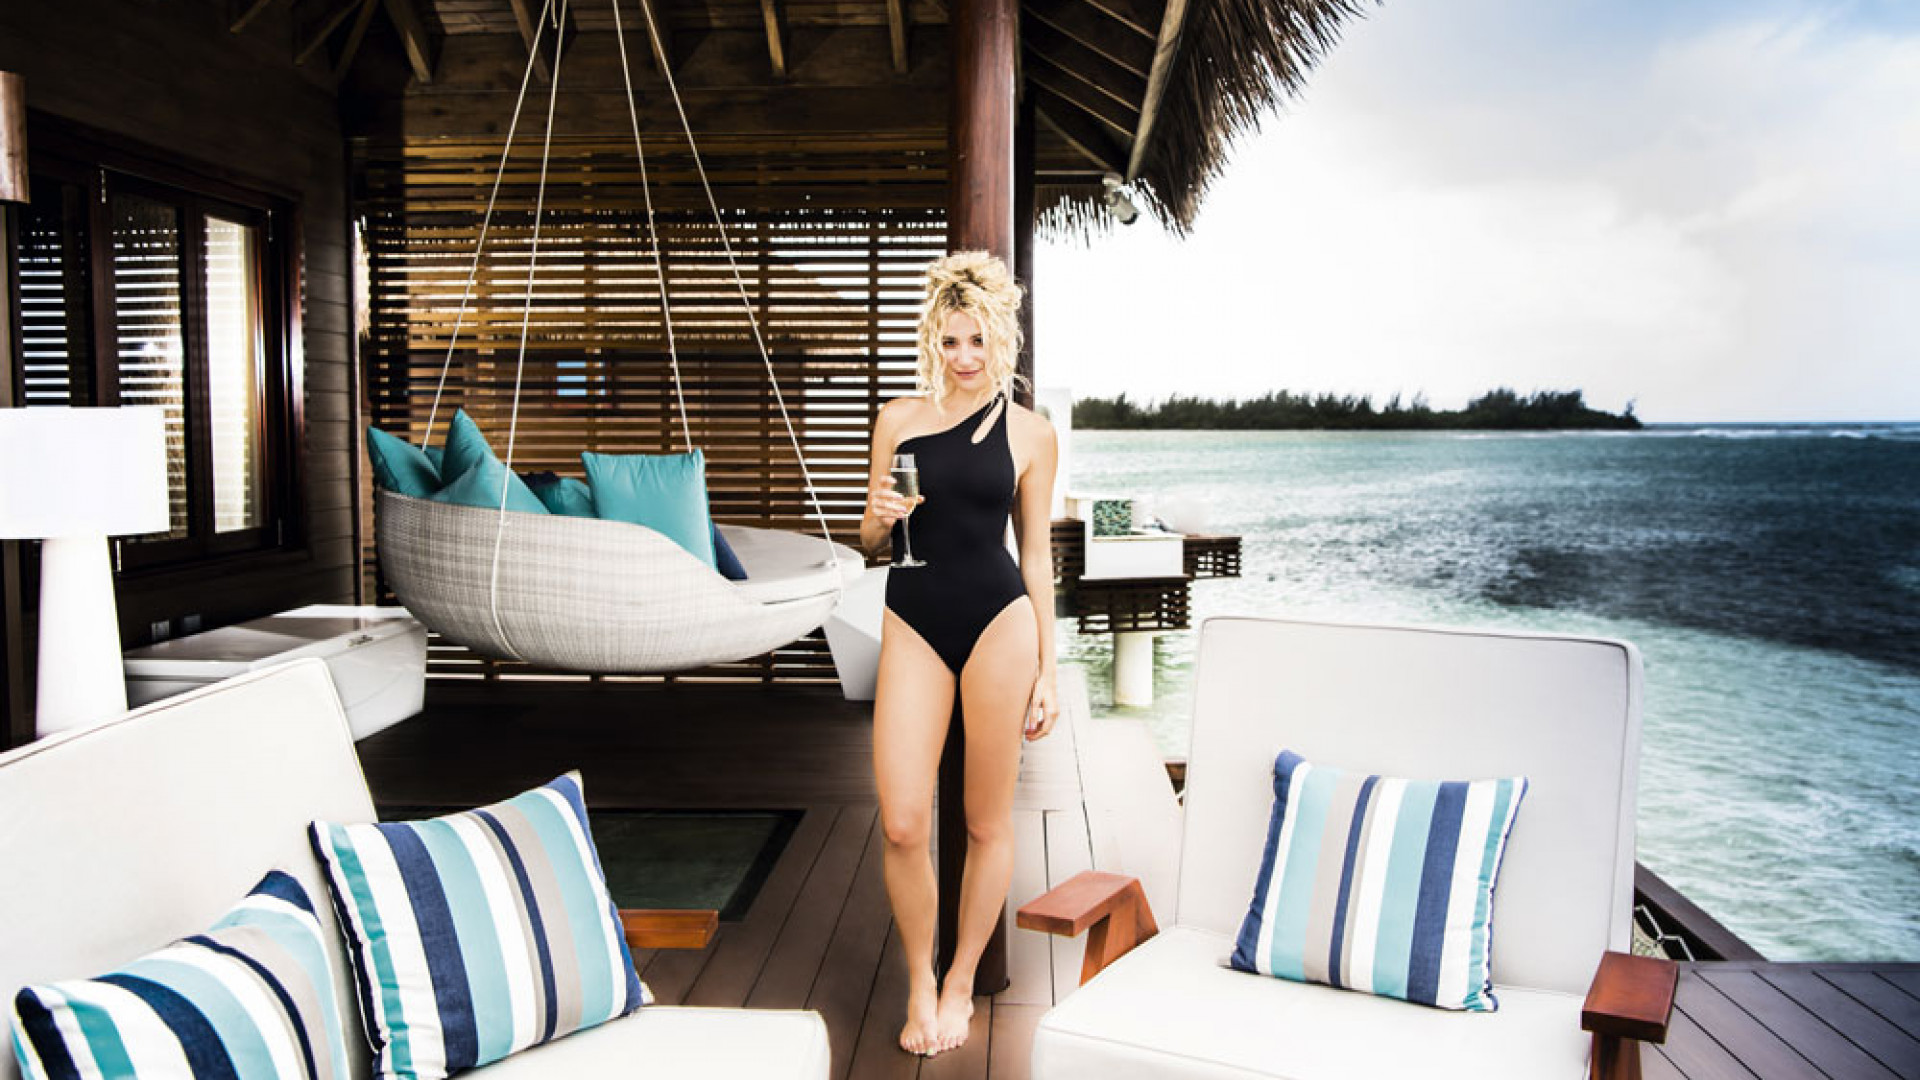 Pixie Lott at Sandals Overwater Villas in Jamaica